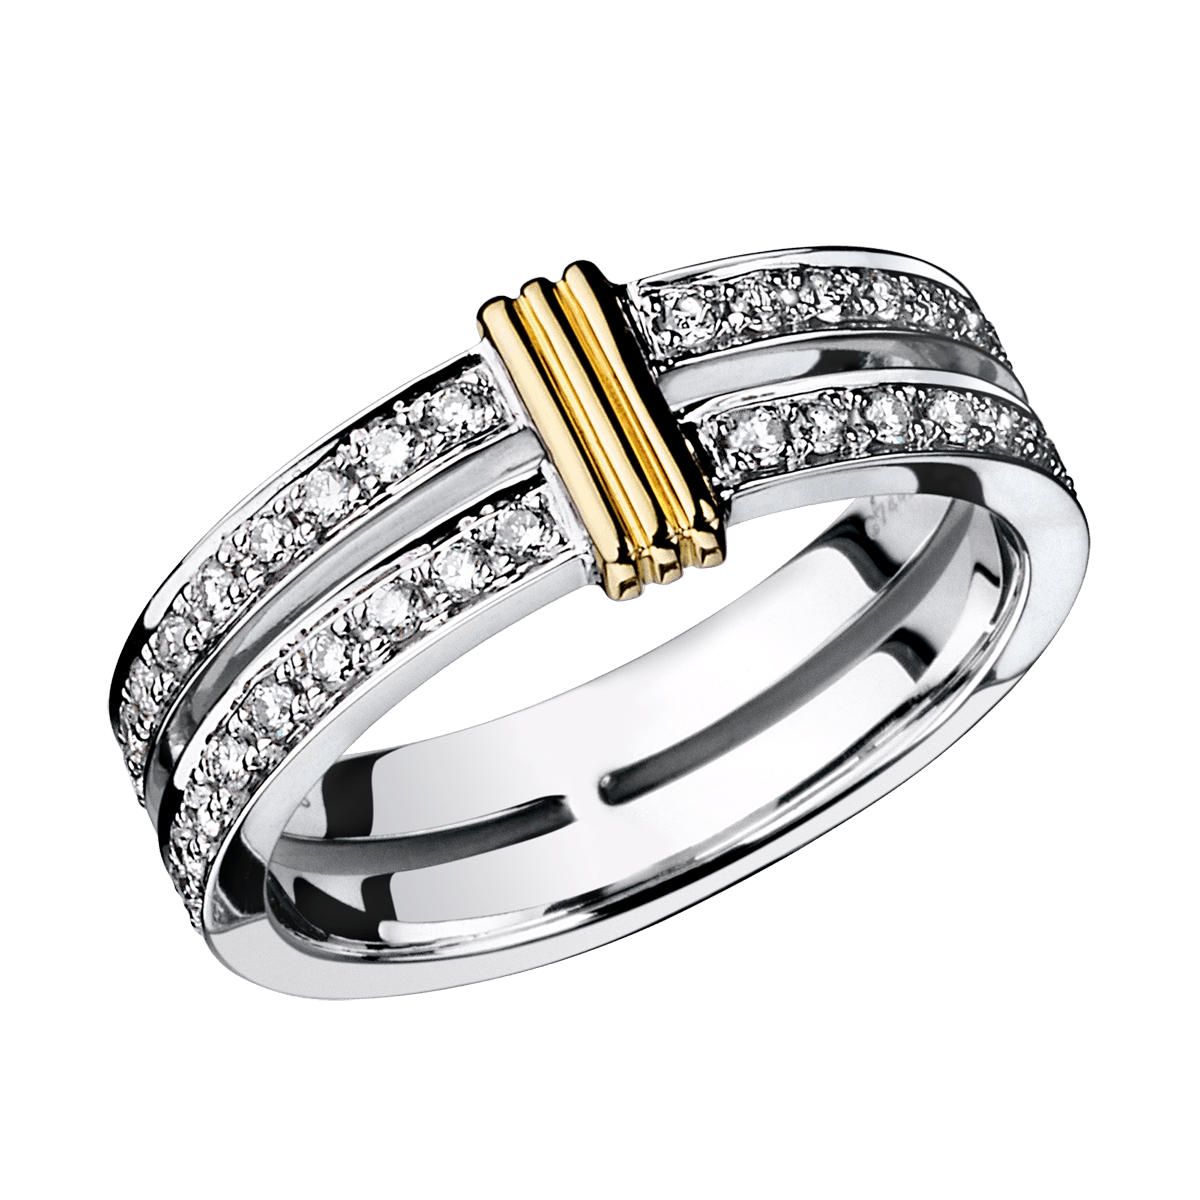 Wedding Band Subtile Eternit� White Gold Link In Yellow Diamonds: Link Diamond Wedding Band At Reisefeber.org